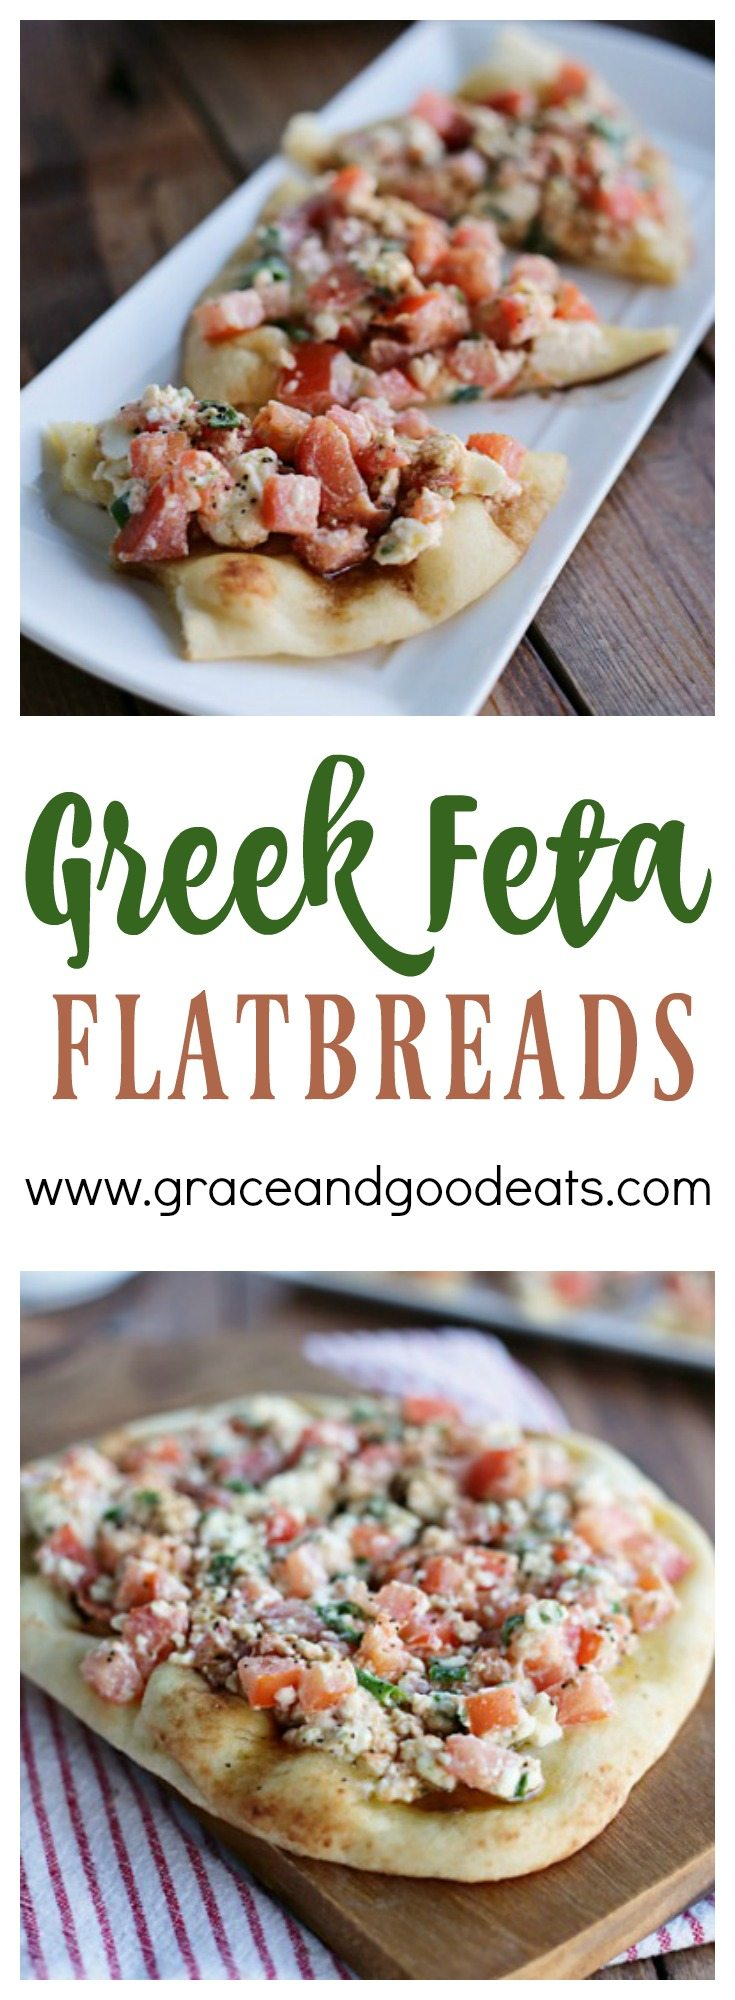 This Greek Feta Flatbread is like summer on a plate. Would be great for game day, too!Slice to share or serve as a personal sized pizza.